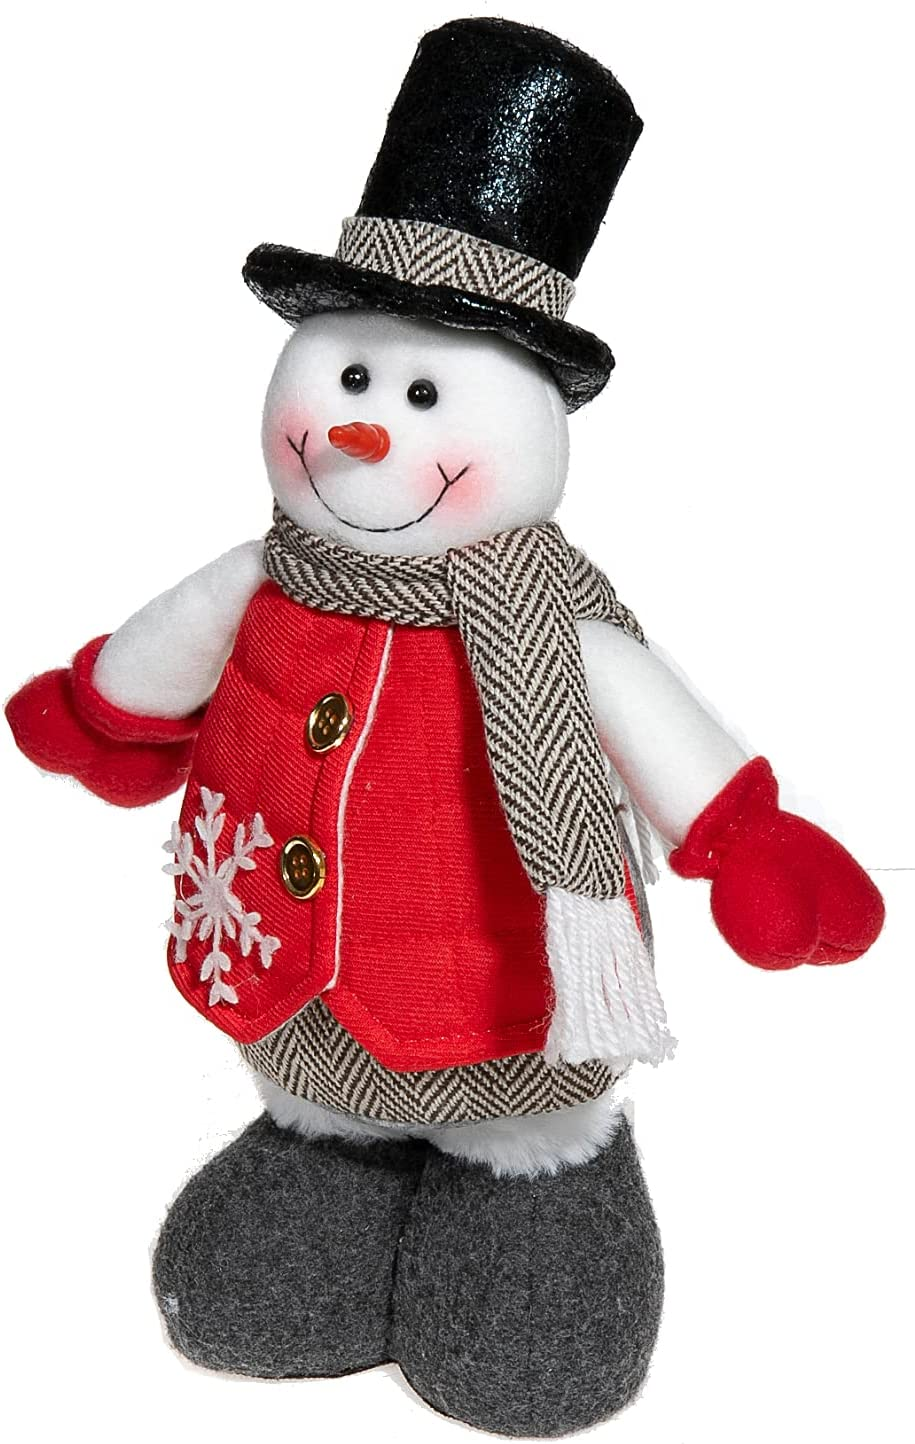 New Free Shipping IH CASADECOR Red Vest Figurines Stander Plush Daily bargain sale Snowman